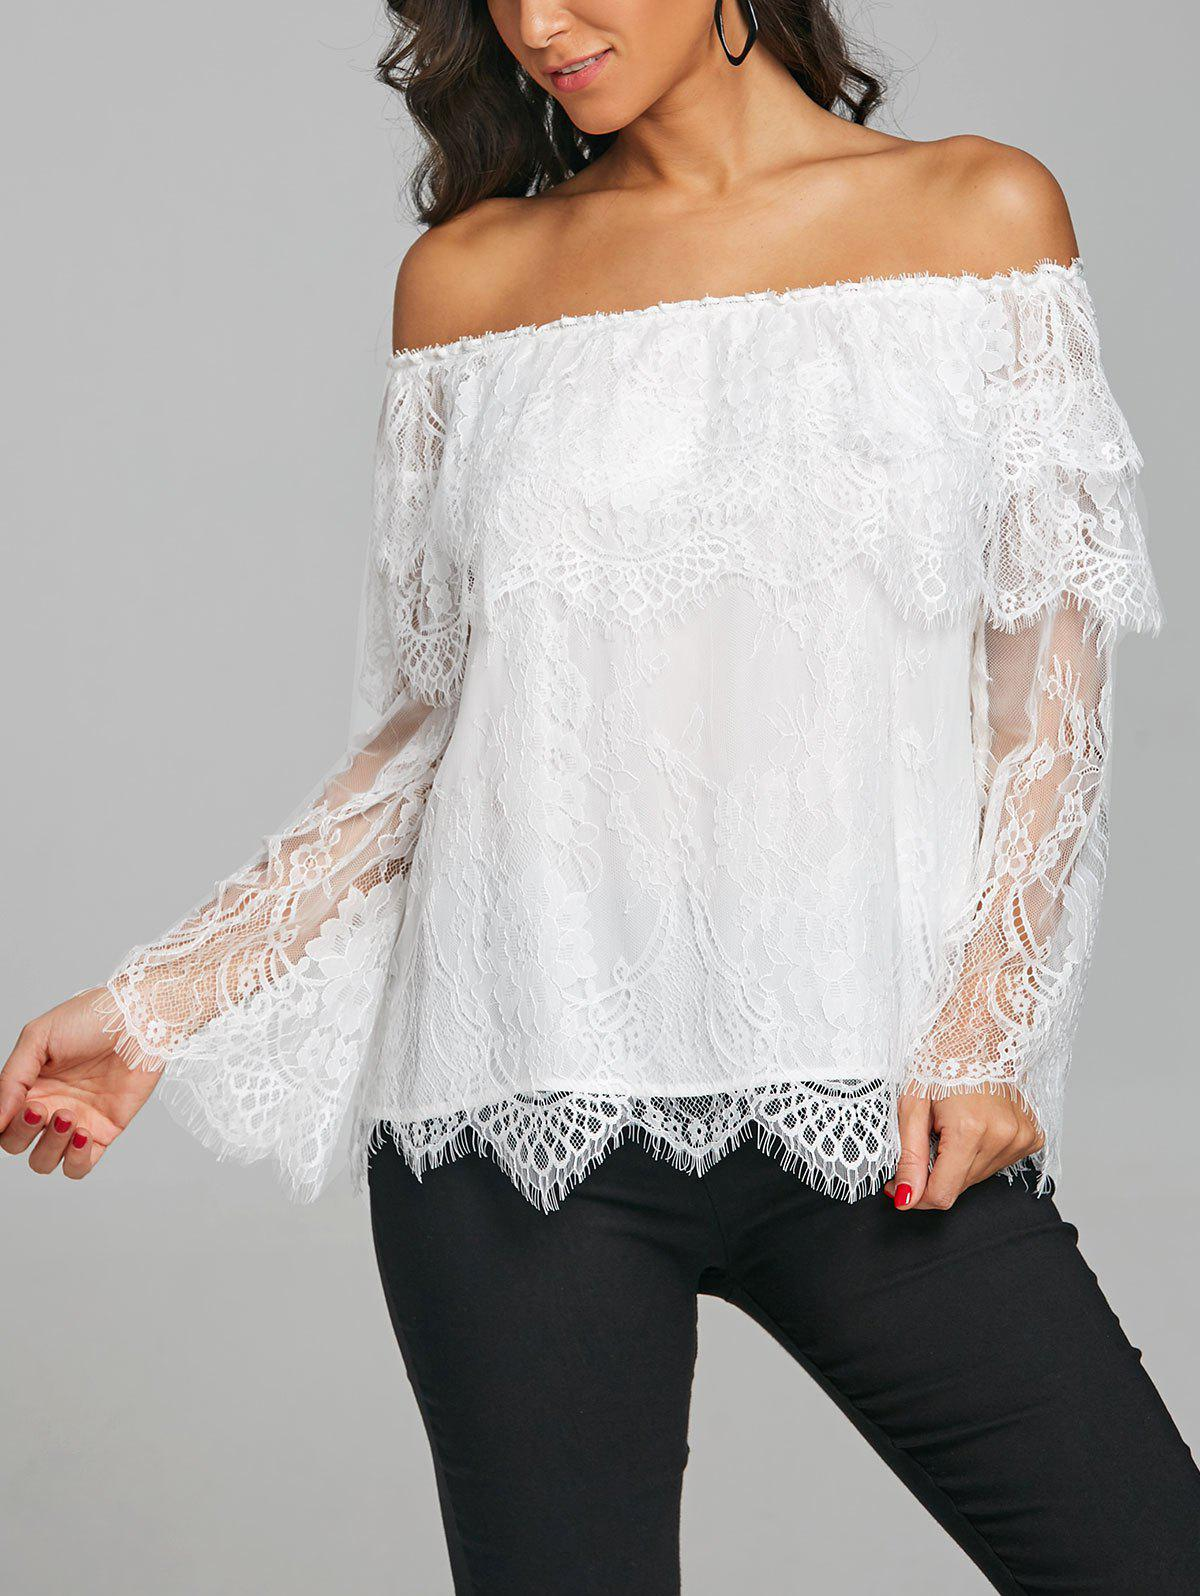 Hot Tiered Off The Shoulder Lace Blouse